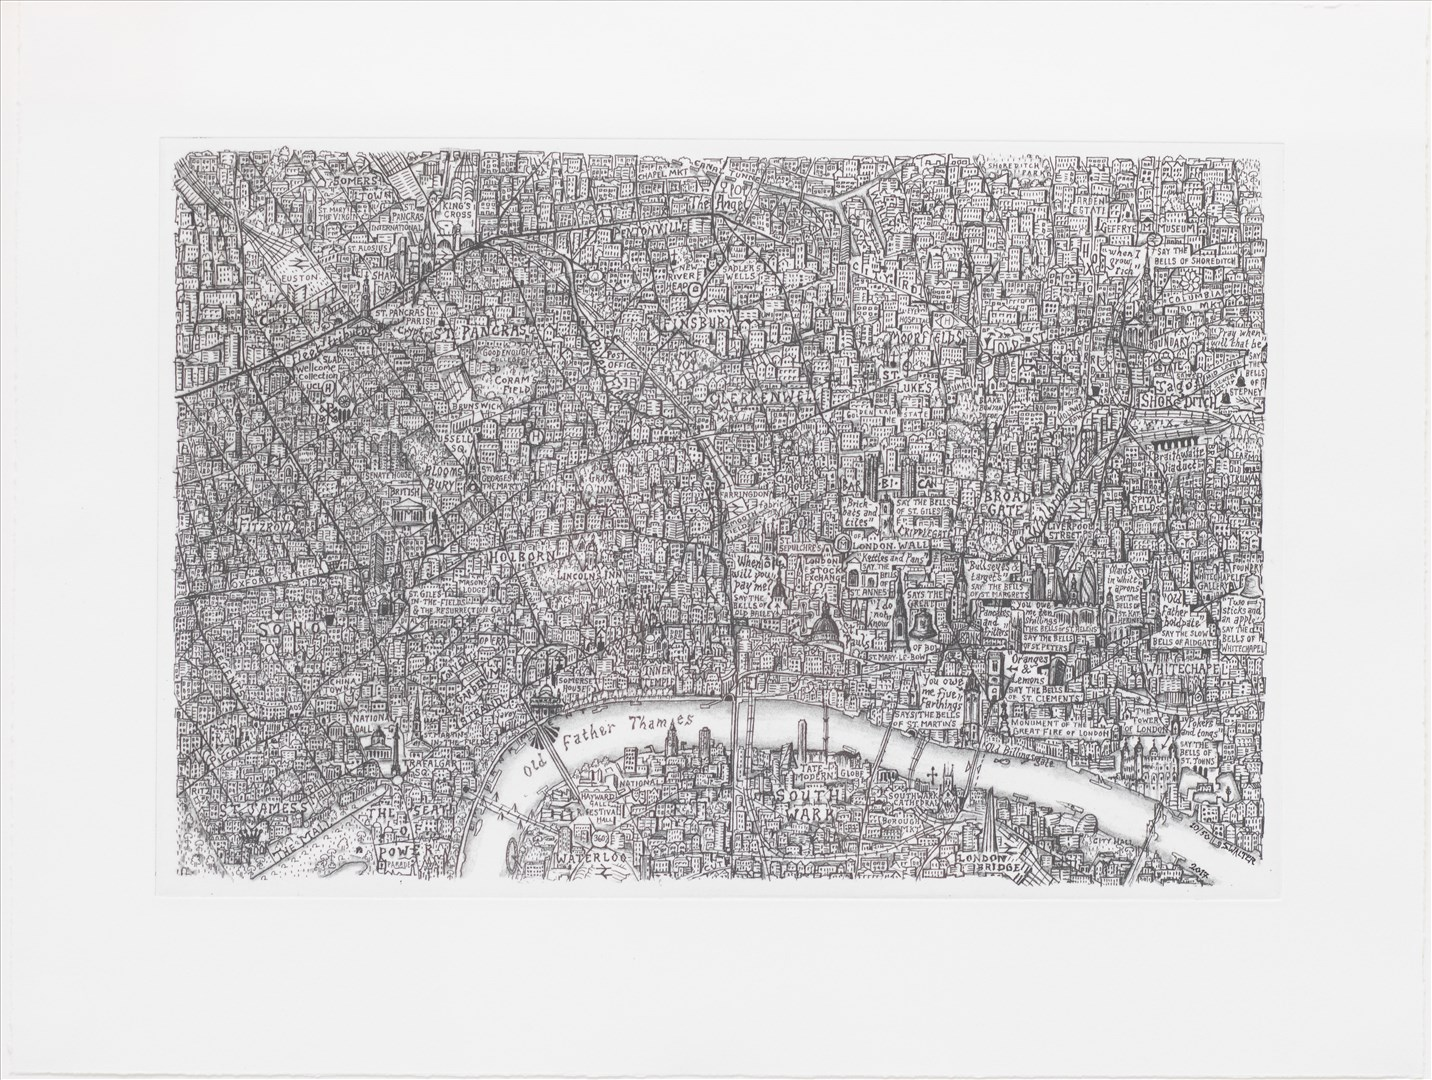 Stephen Walter | OLD FATHER THAMES | Summer Exhibition